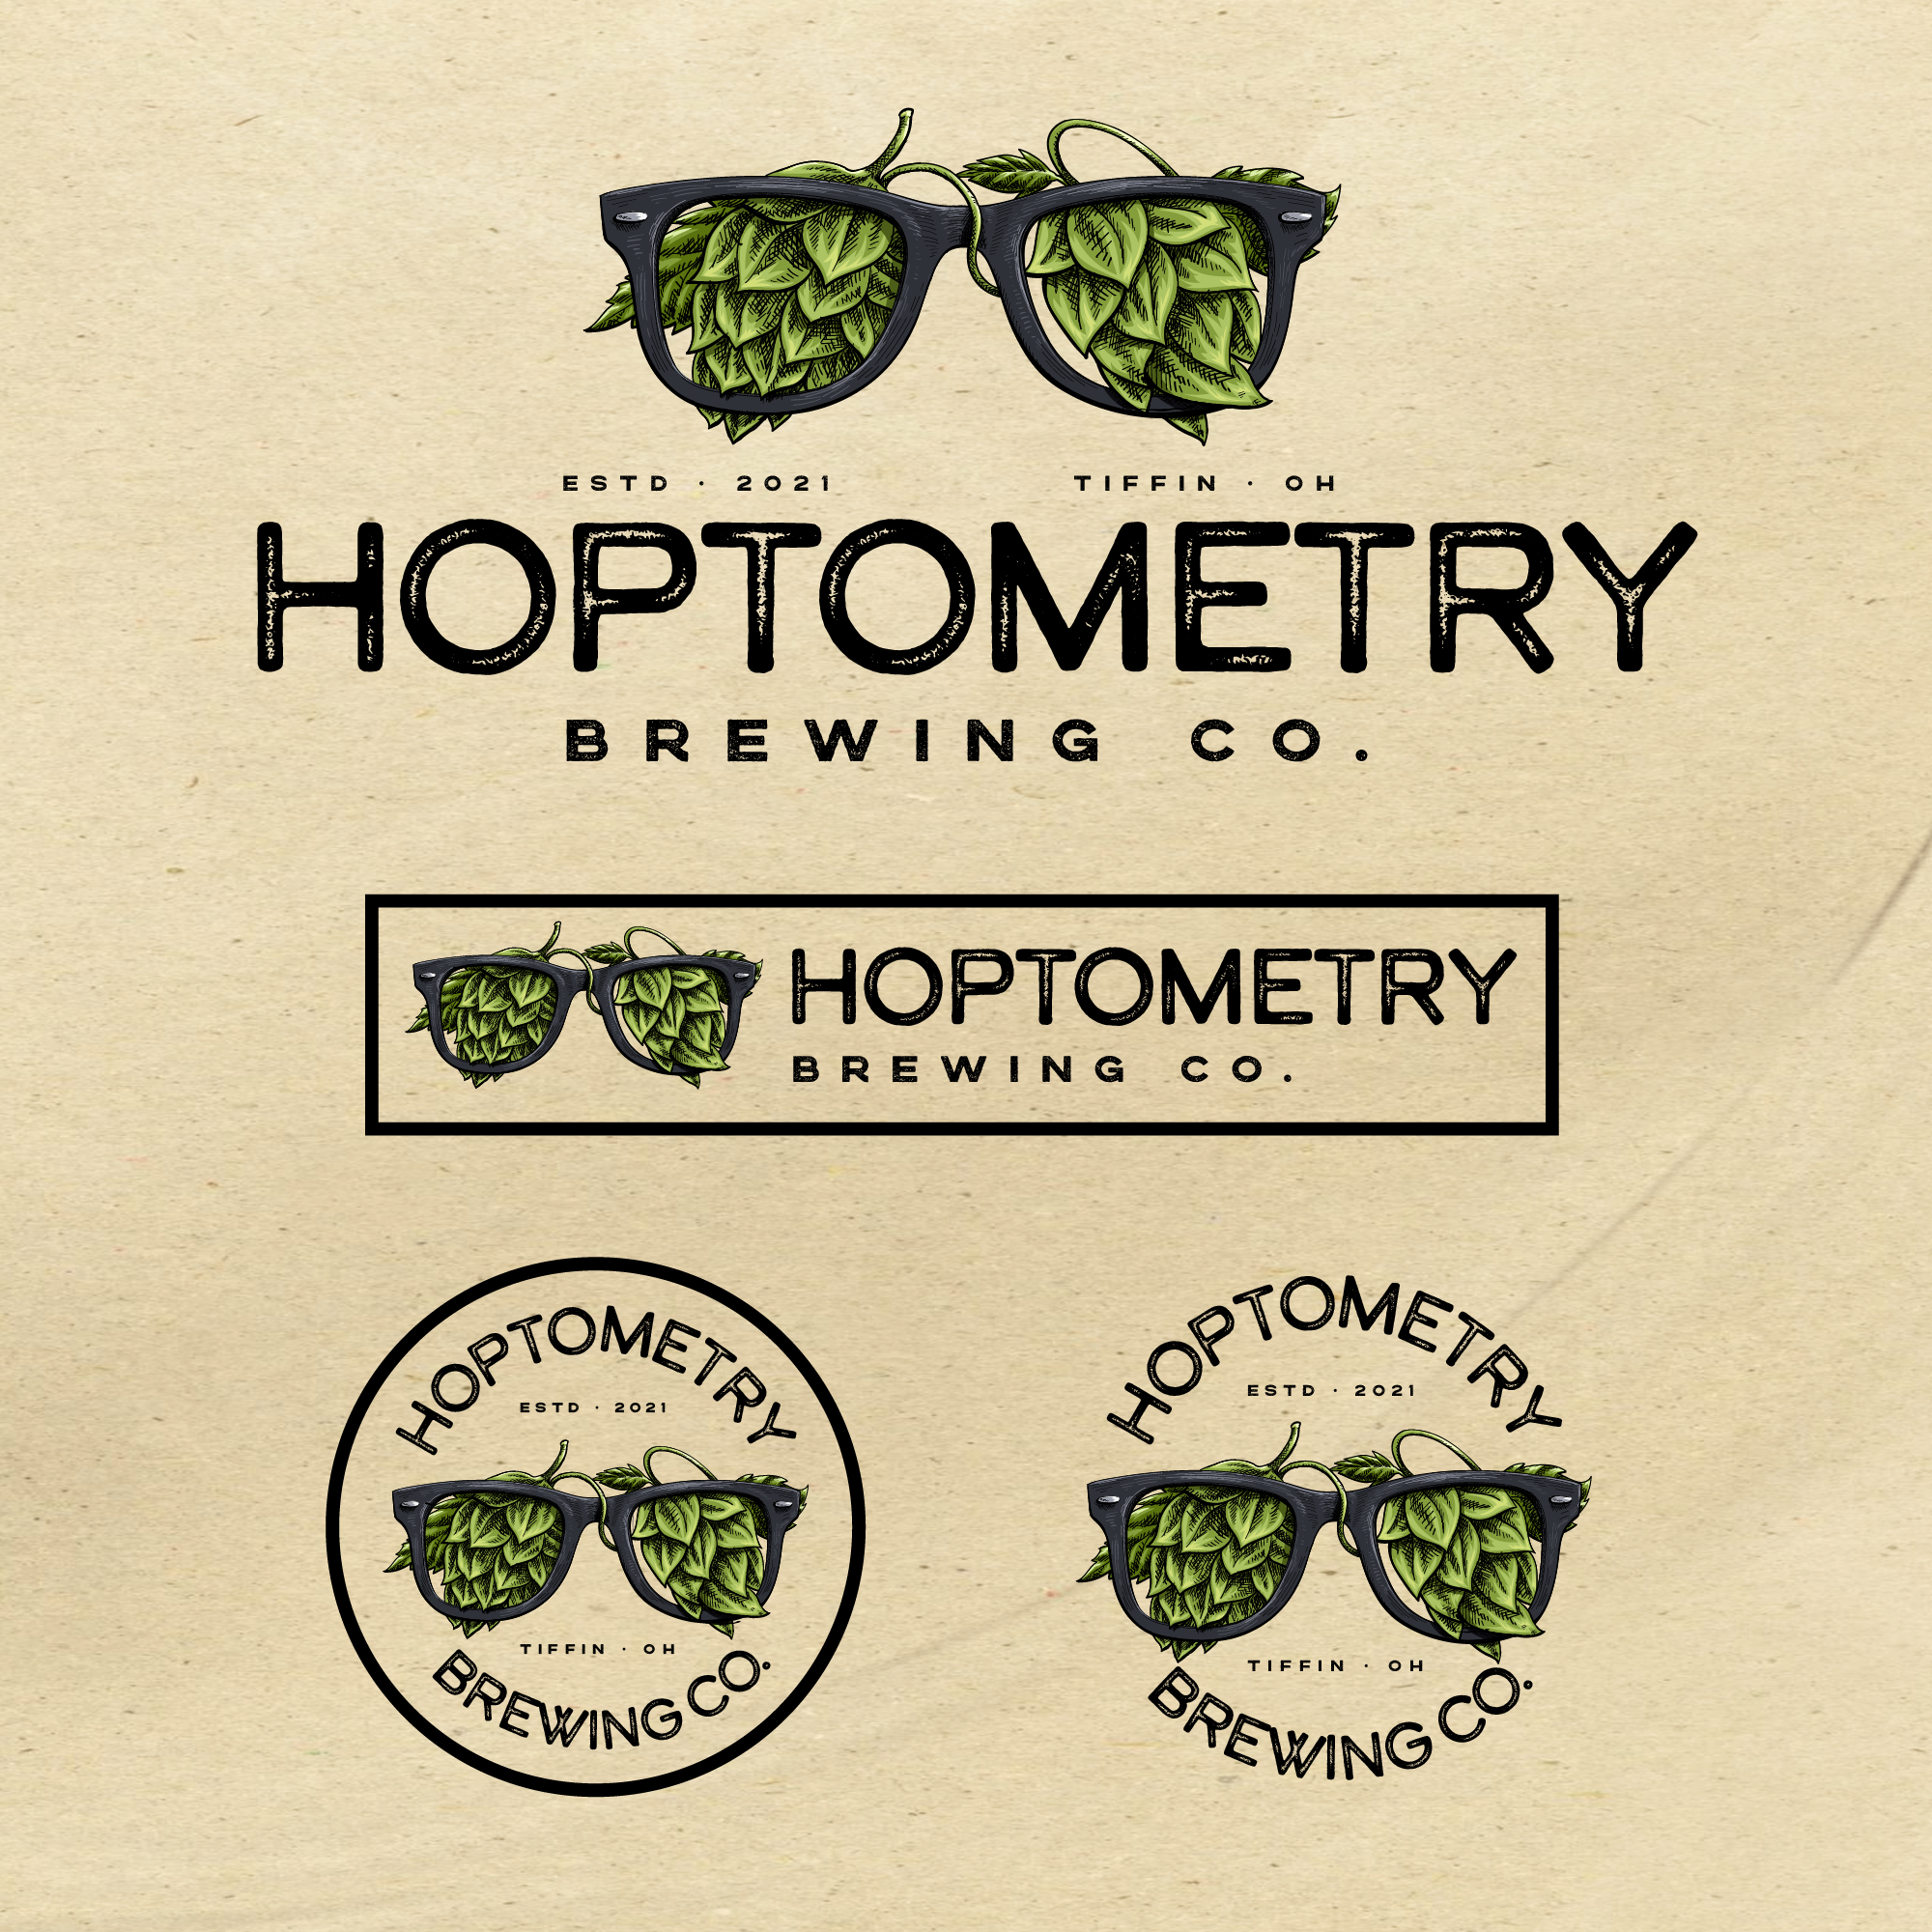 Brewery logo for Hoptometry Brewing